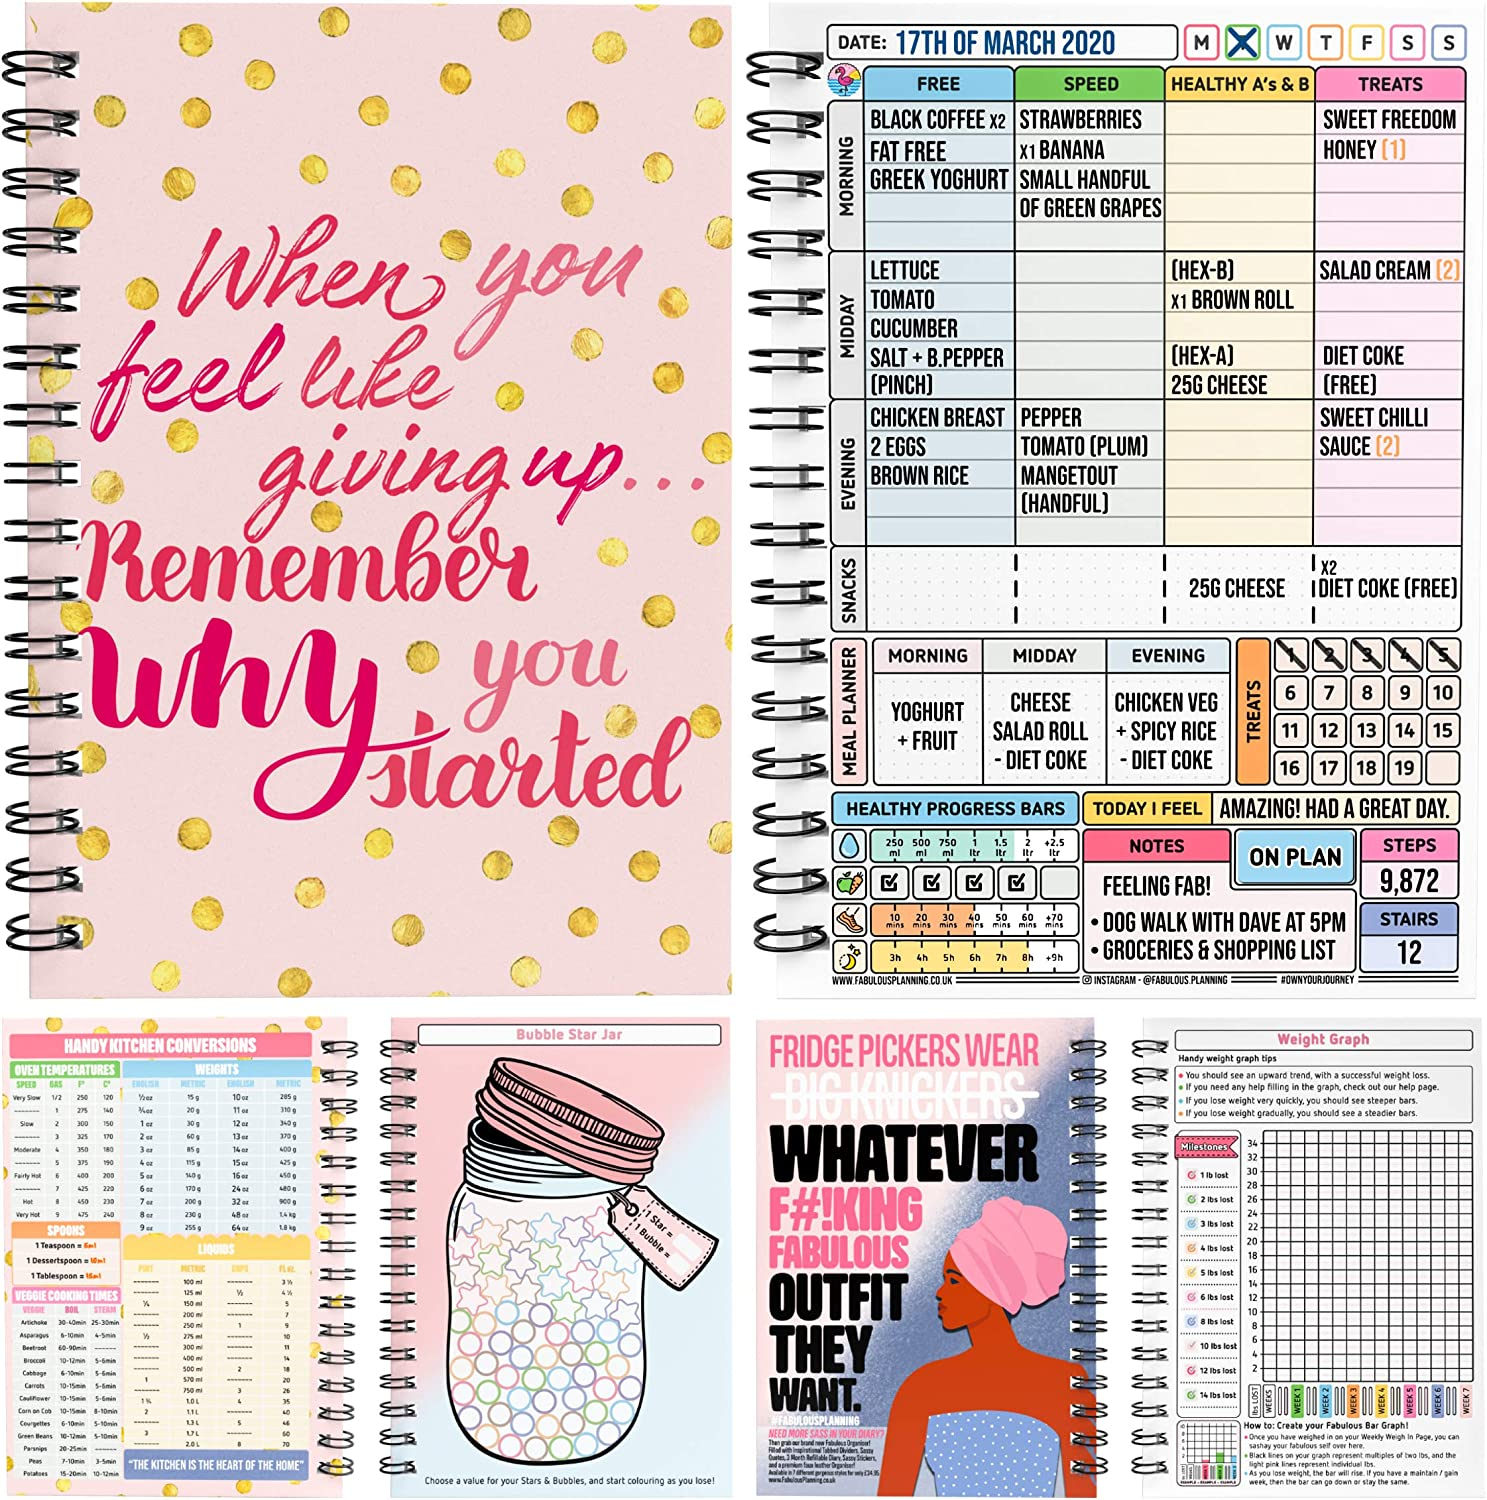 30 INSPIRATIONAL STICKERS FOR Journals or Anywhere else Motivational.